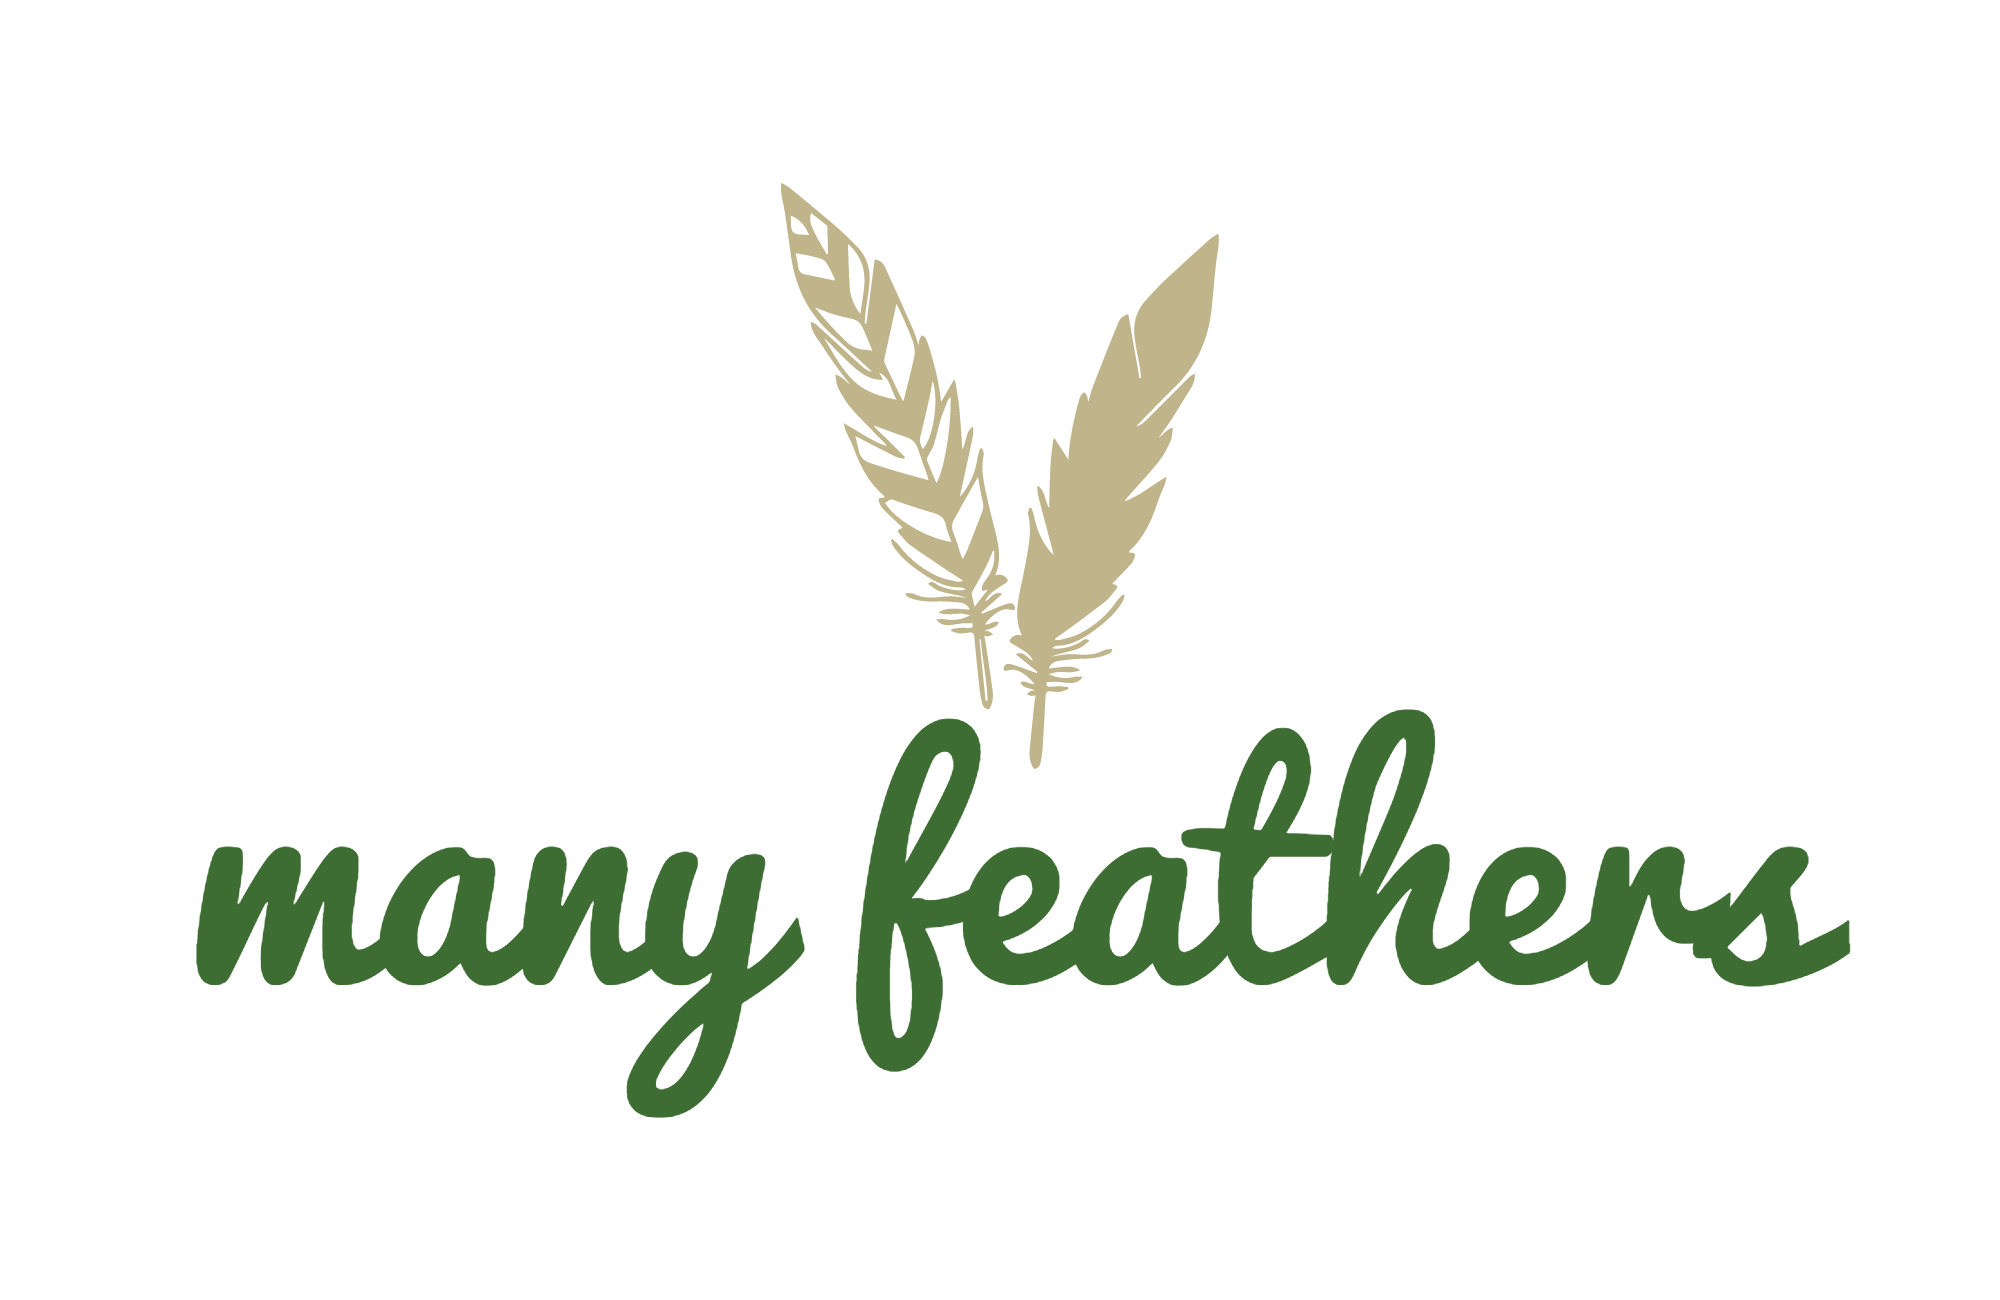 manyfeathers-logo.png